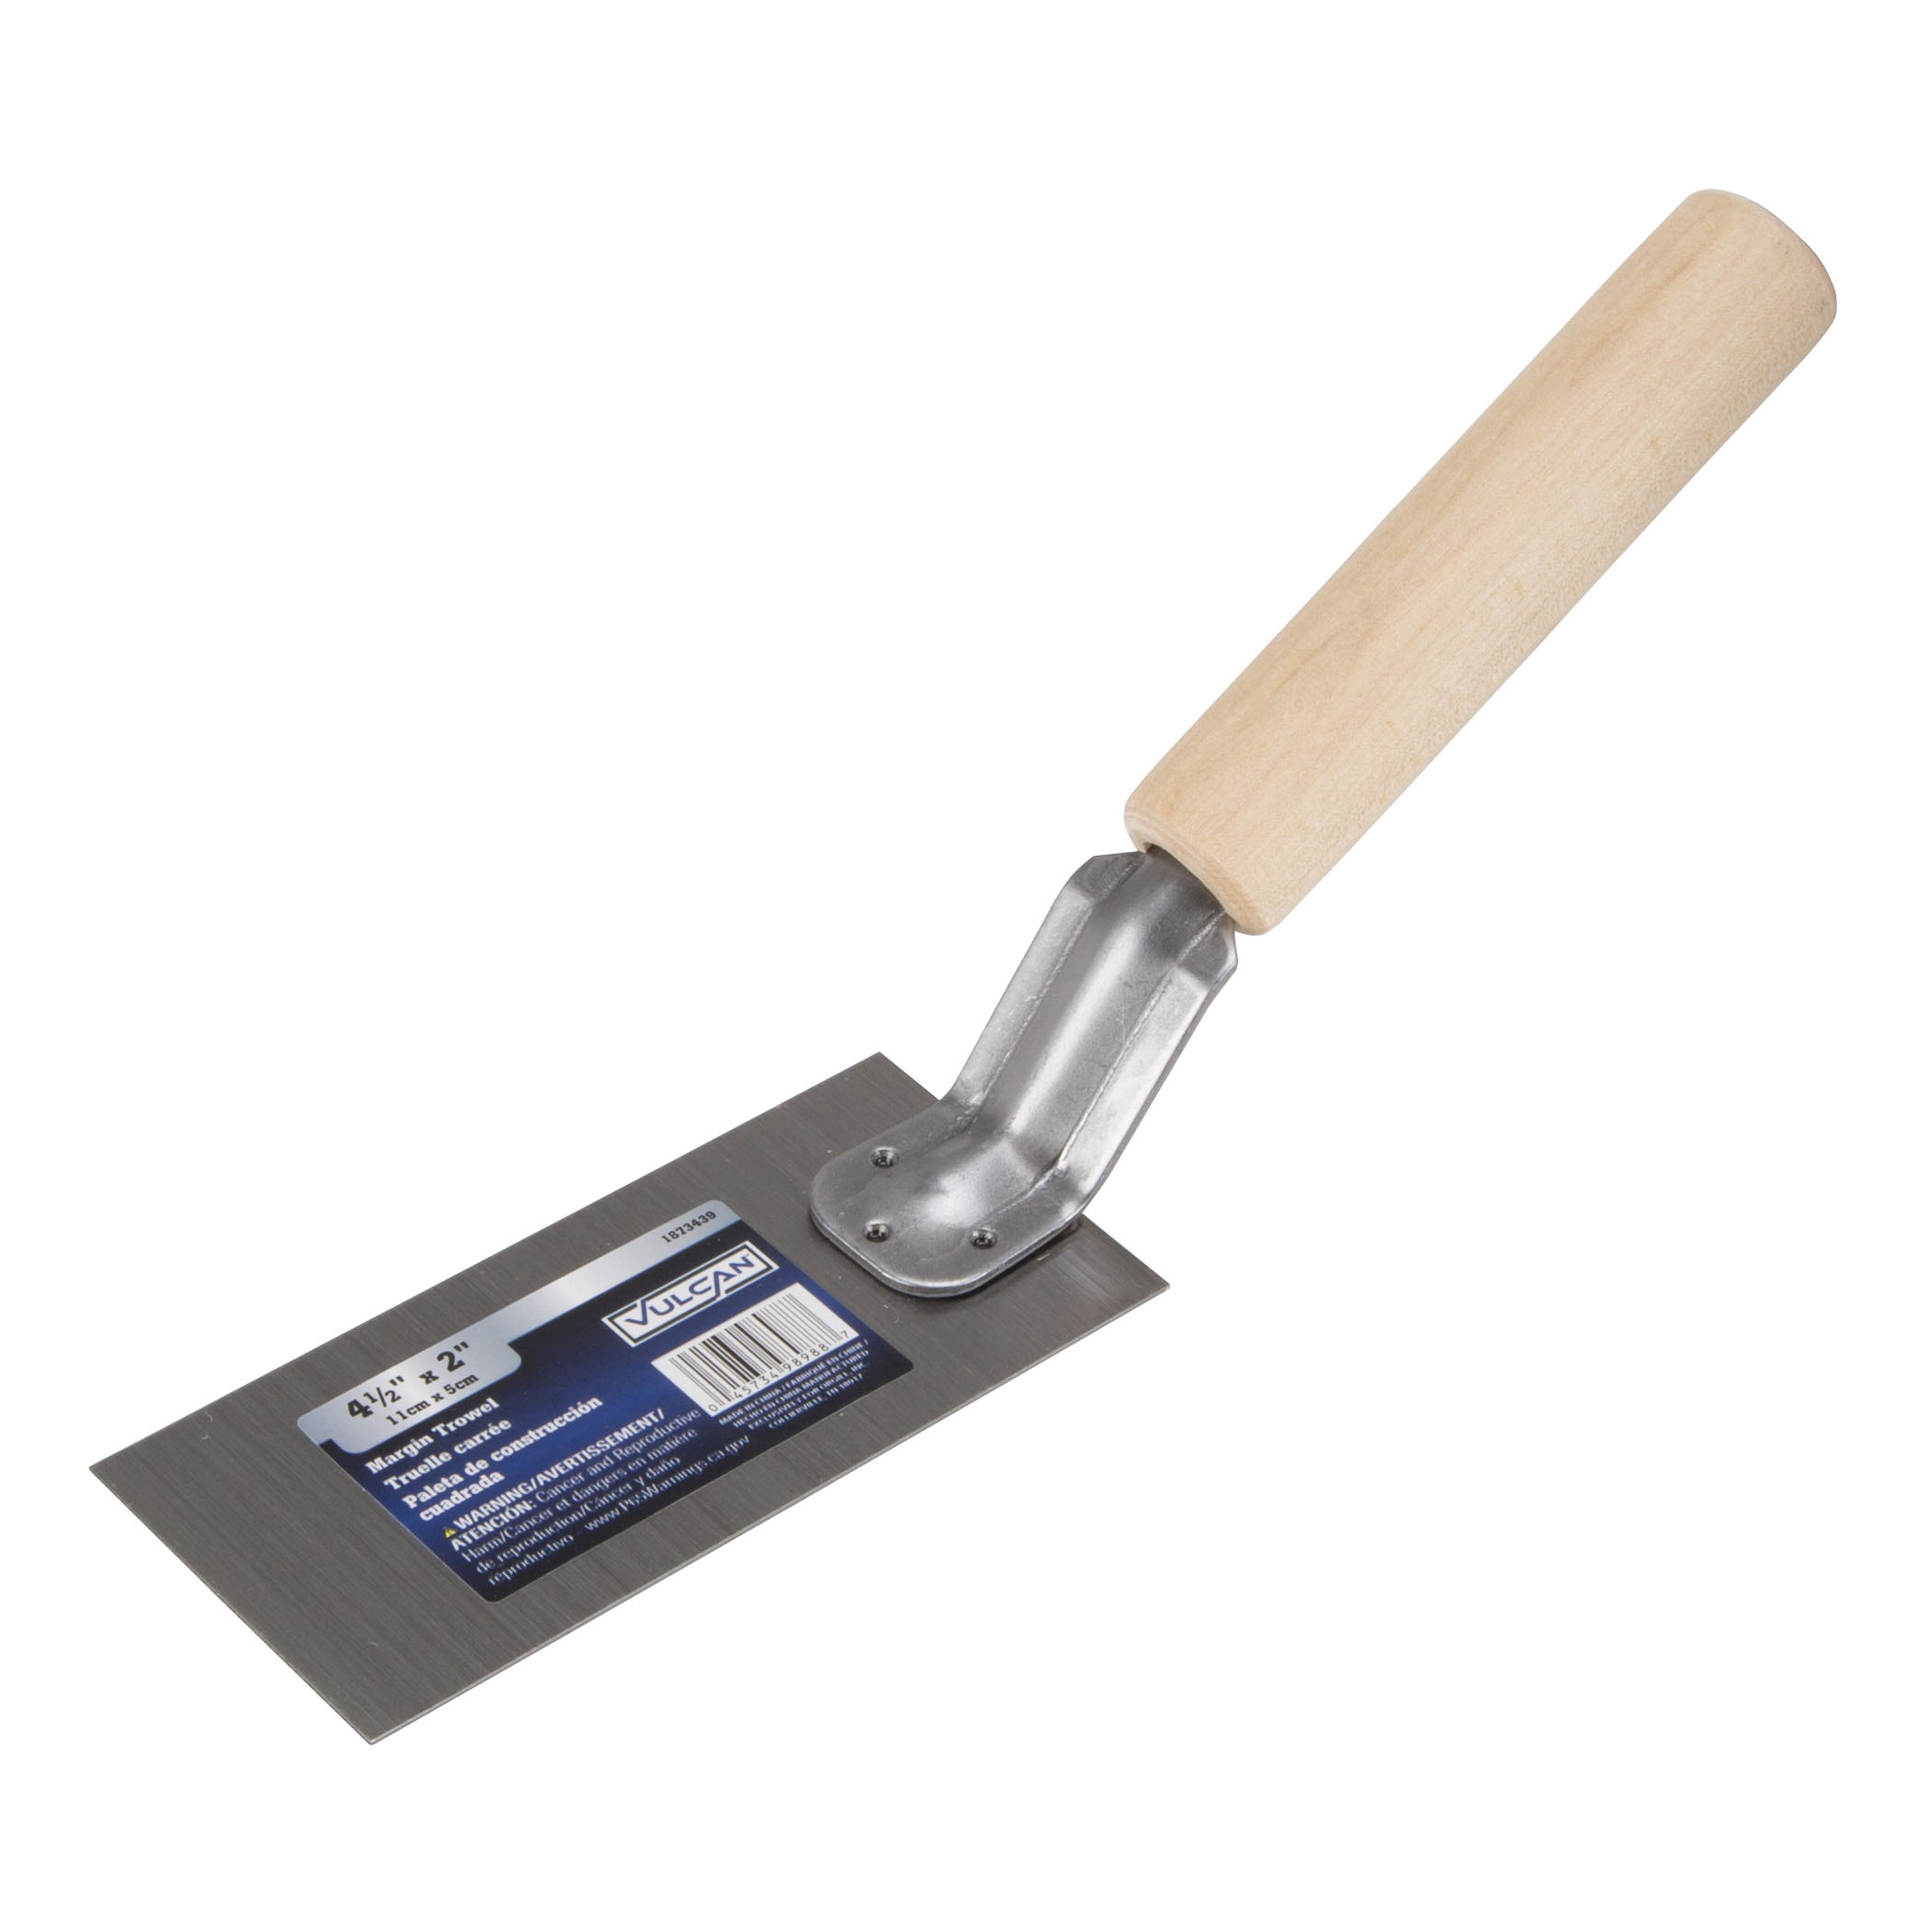 Picture of Vulcan PT-120233L Margin Trowel, 4-1/2 in L Blade, 2 in W Blade, Carbon Steel Blade, Hardwood Handle